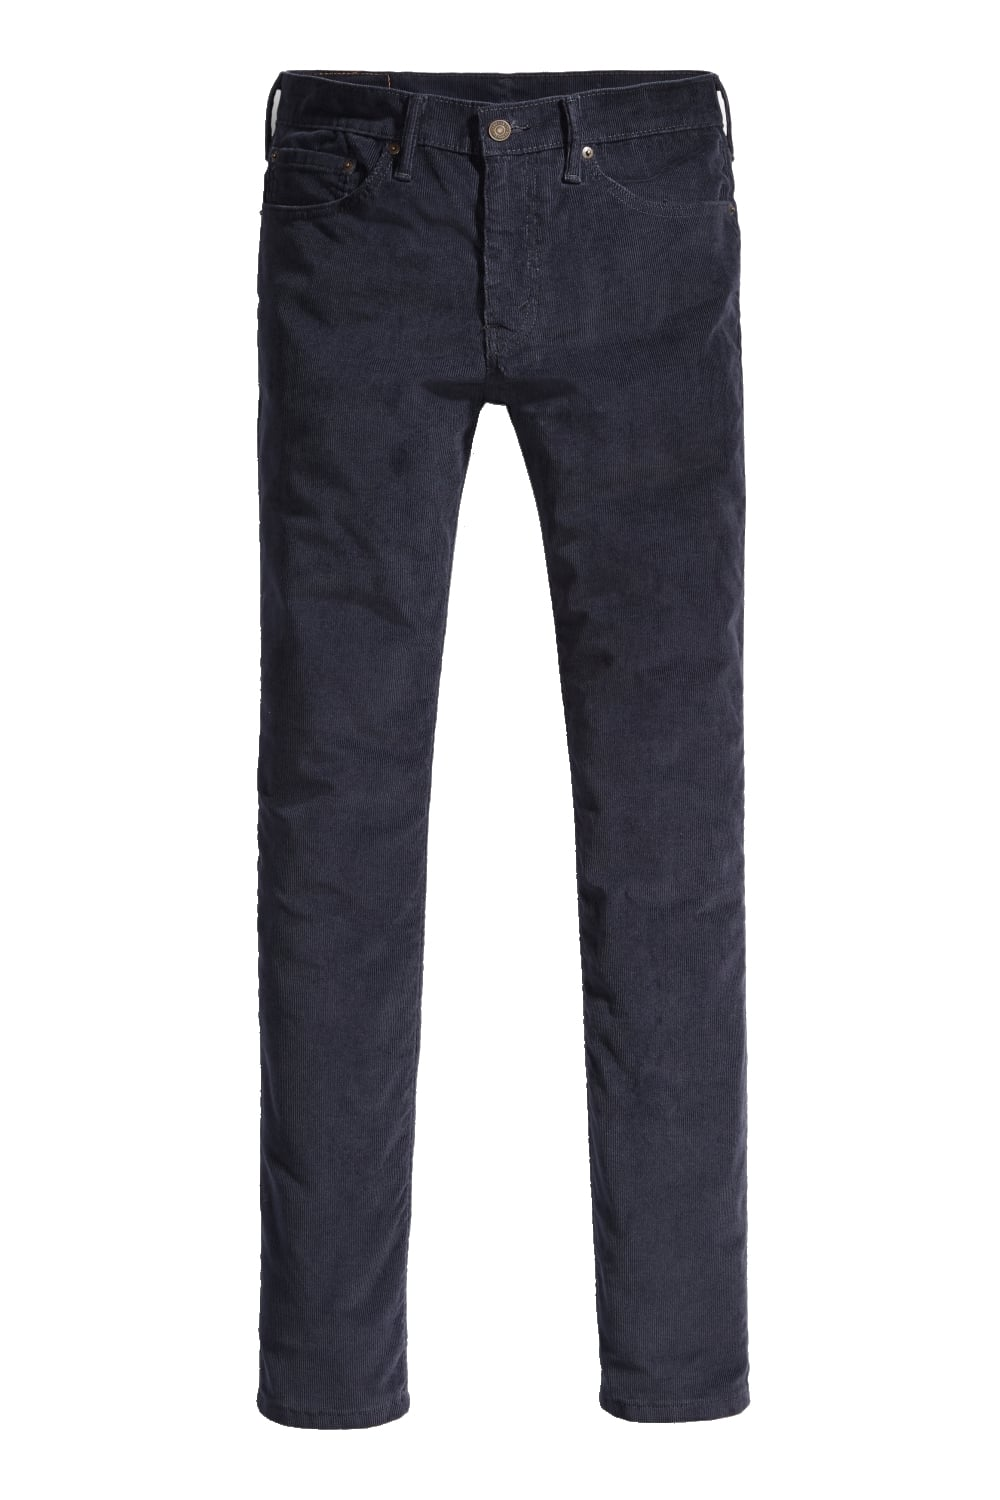 57df5a59a9cd Levi s 511 Slim Fit Cords (Nightwatch Blue)